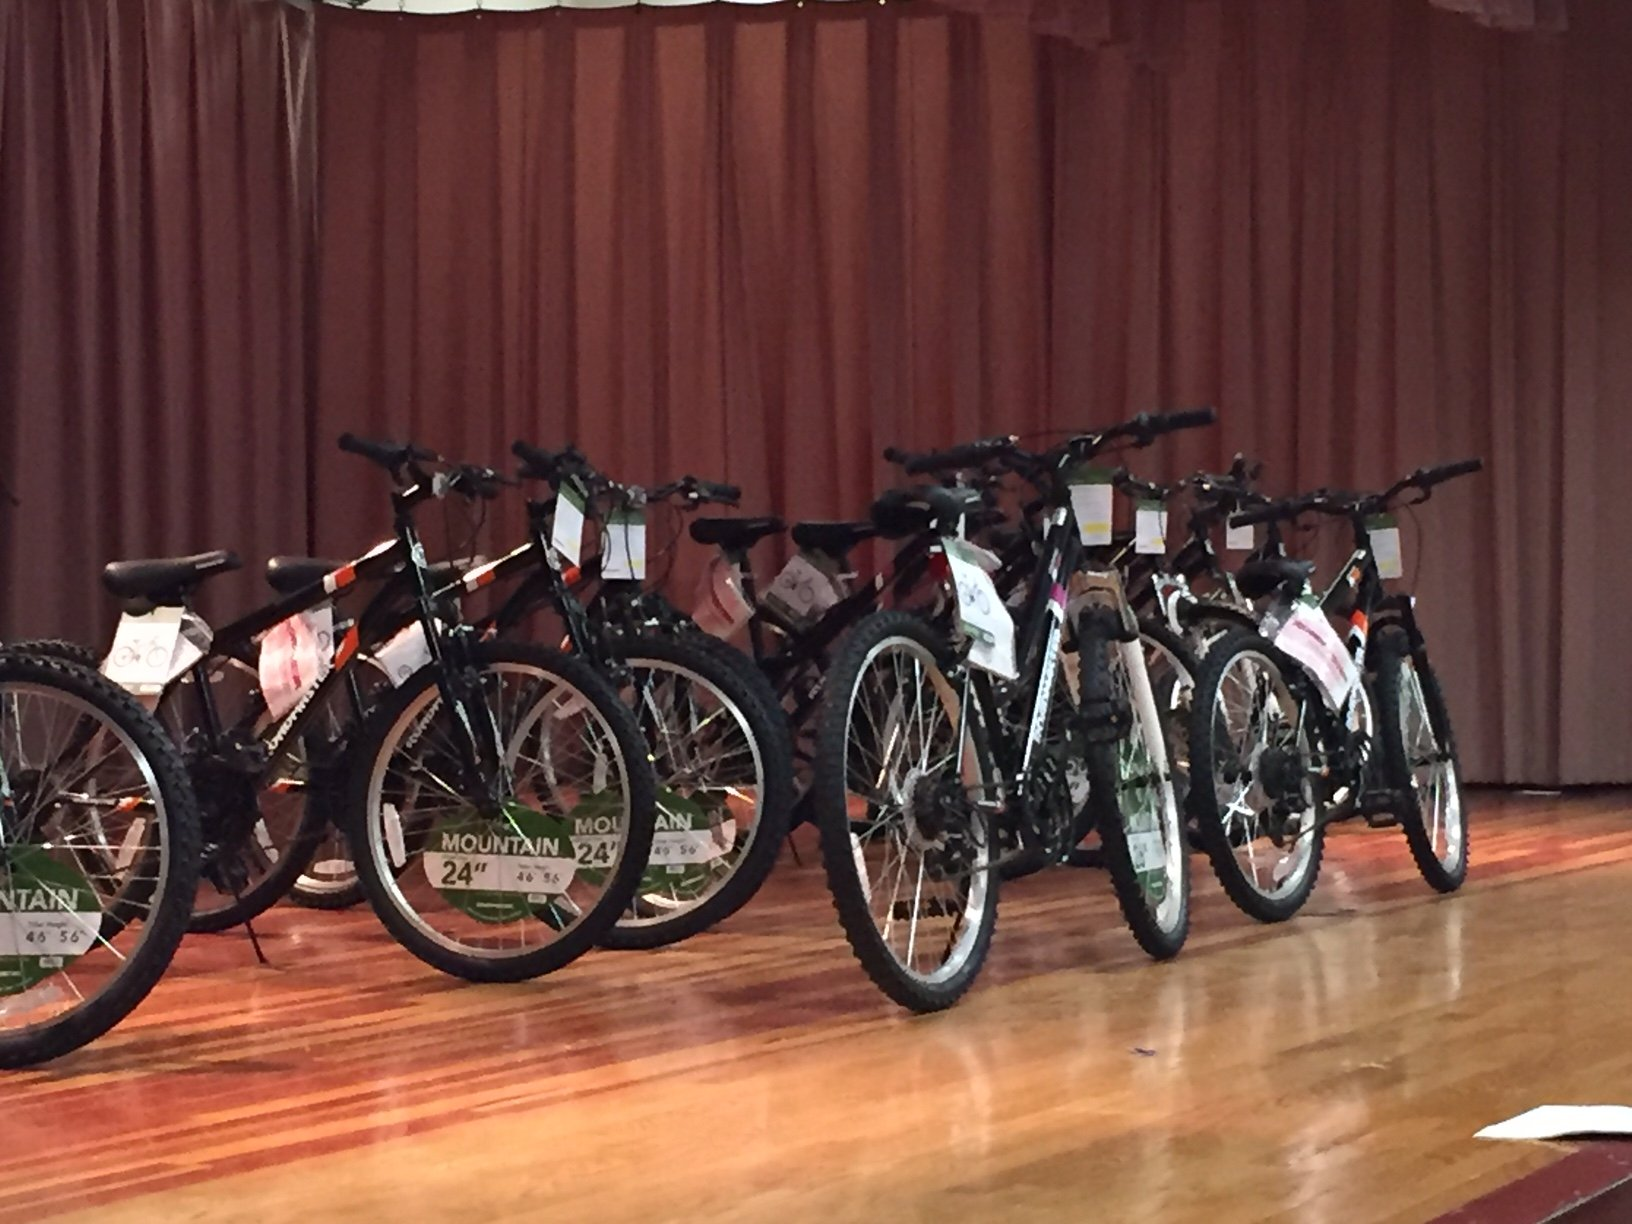 Seventh-graders with perfect attendance at Dwight D. Eisenhower Middle School, in Laurel, got free bikes Thursday. (WTOP/Dennis Foley)